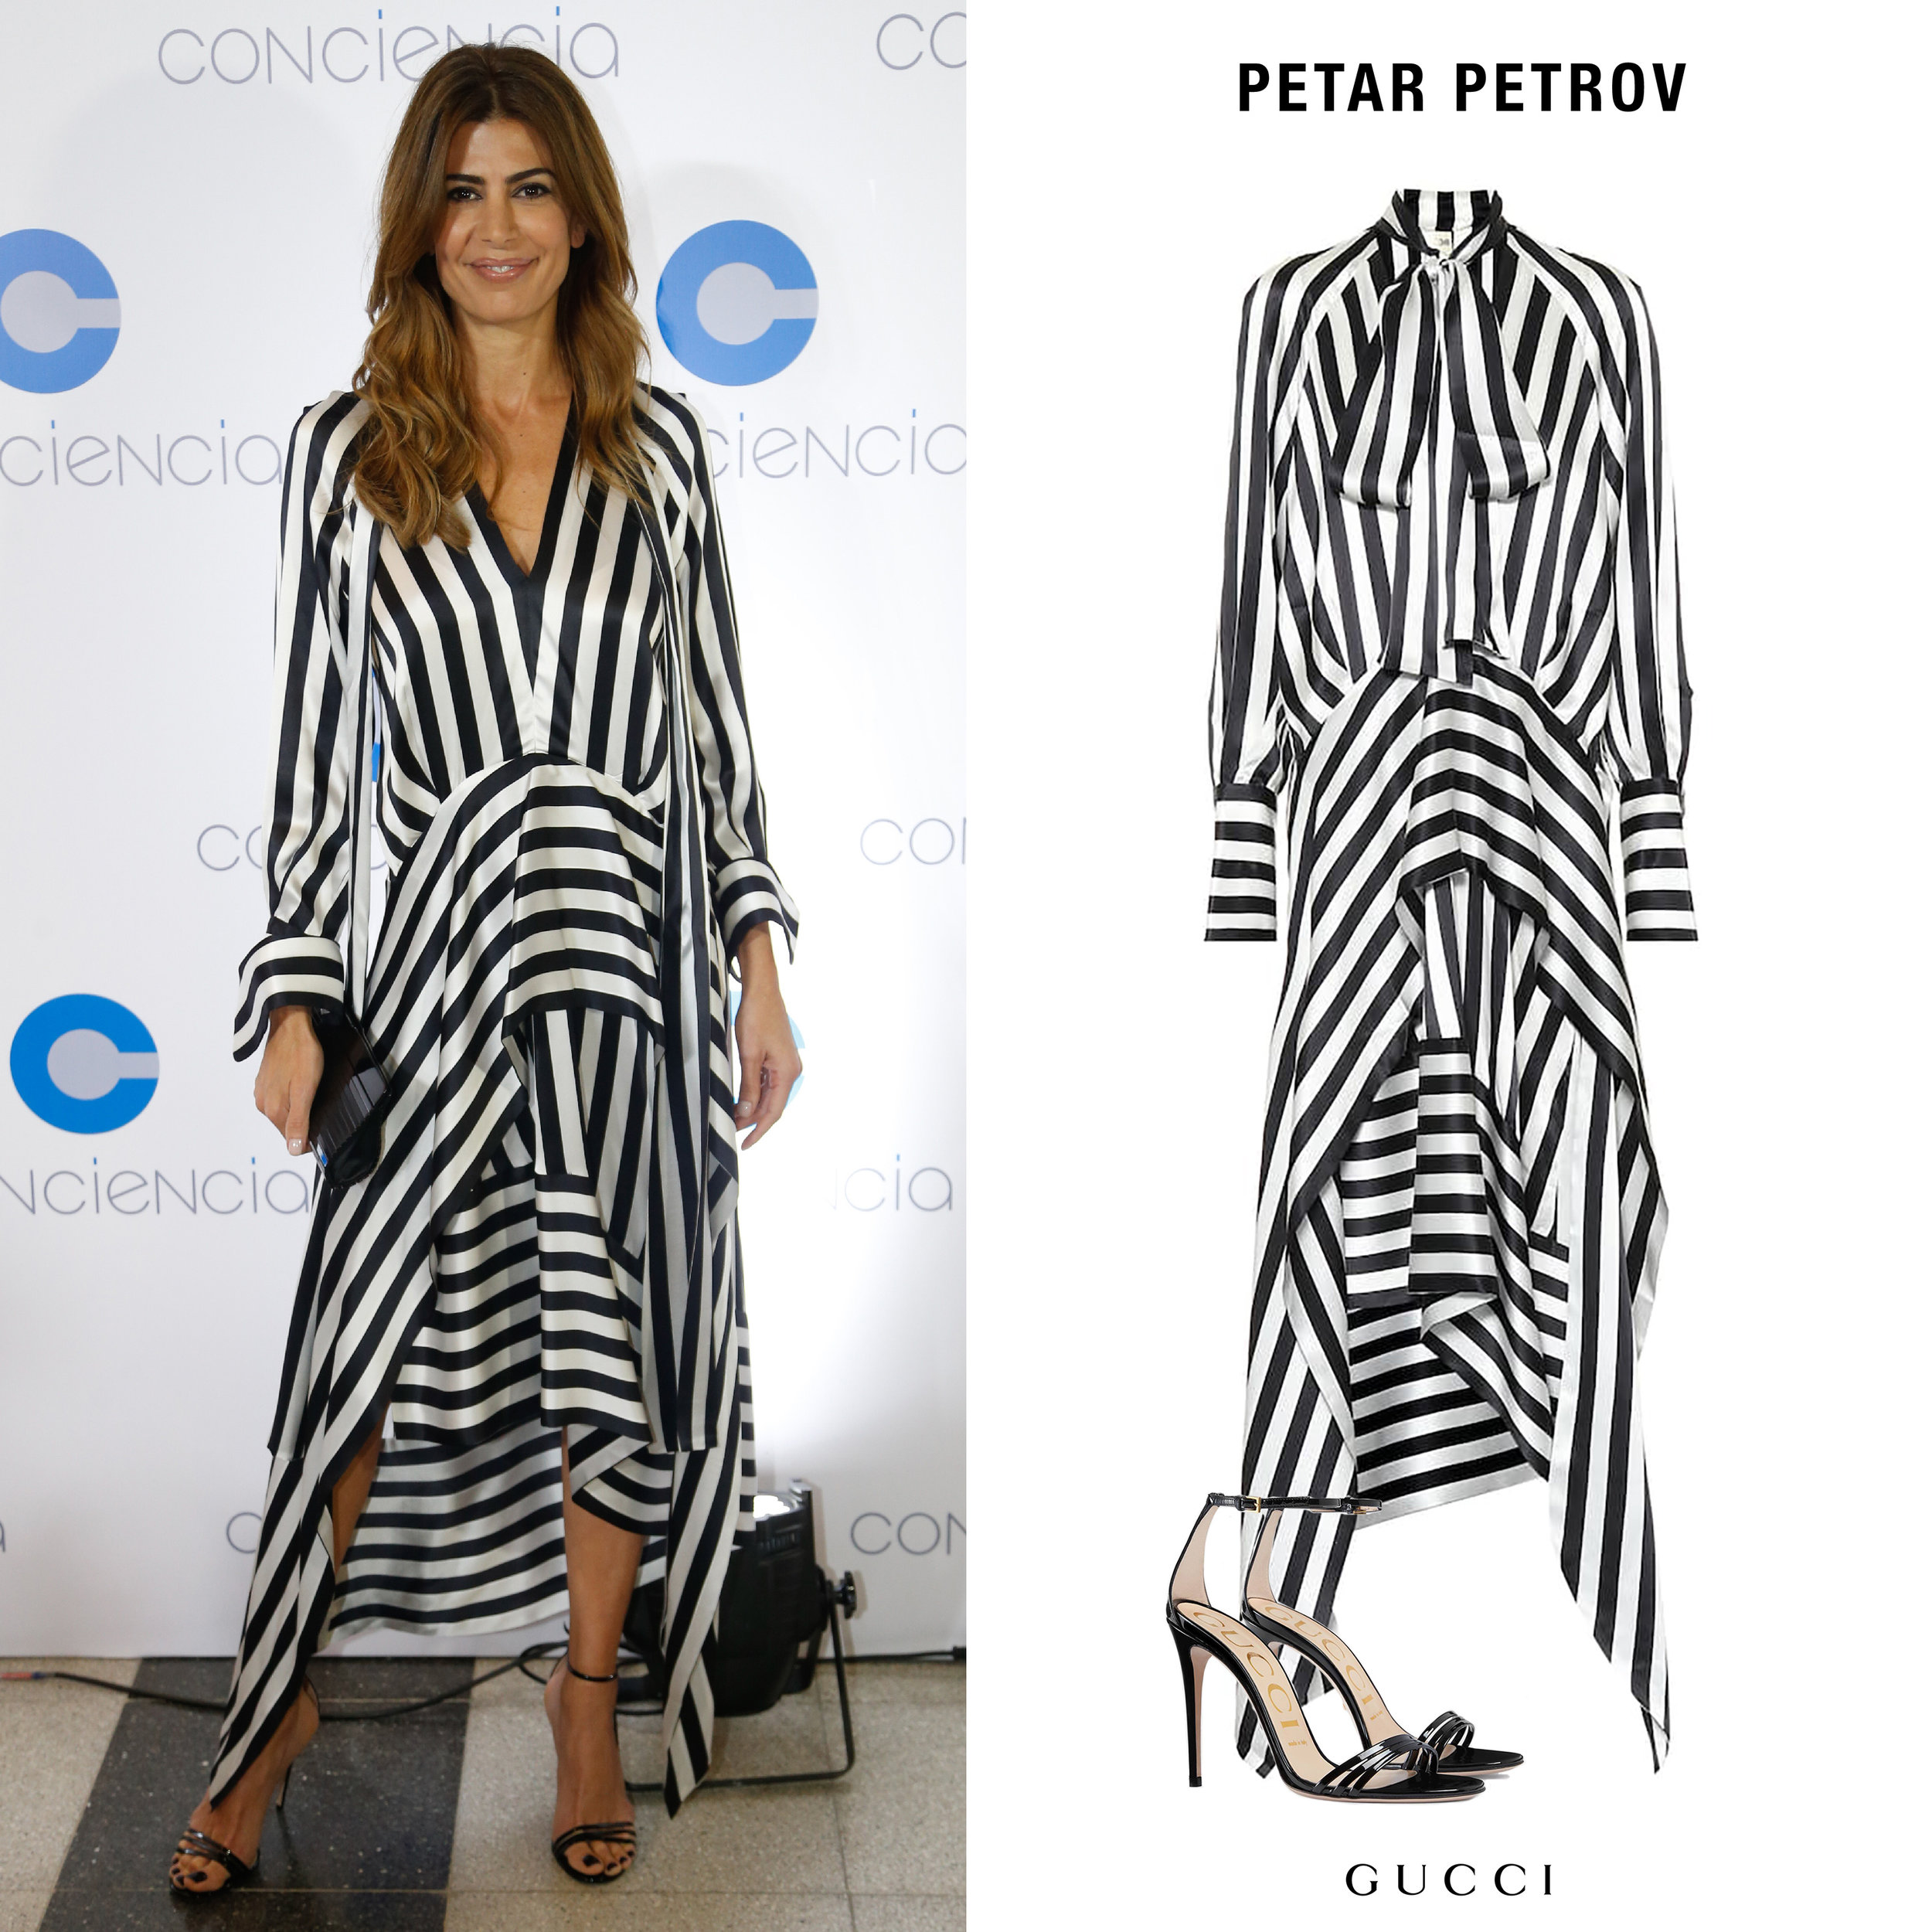 Juliana_Awada_Gala_Conciencia_2019_Vestido_Rayas_Striped_Dress_Petar_Petrov_Sandalias_Black_Strappy_Sandals_Gucci.jpg